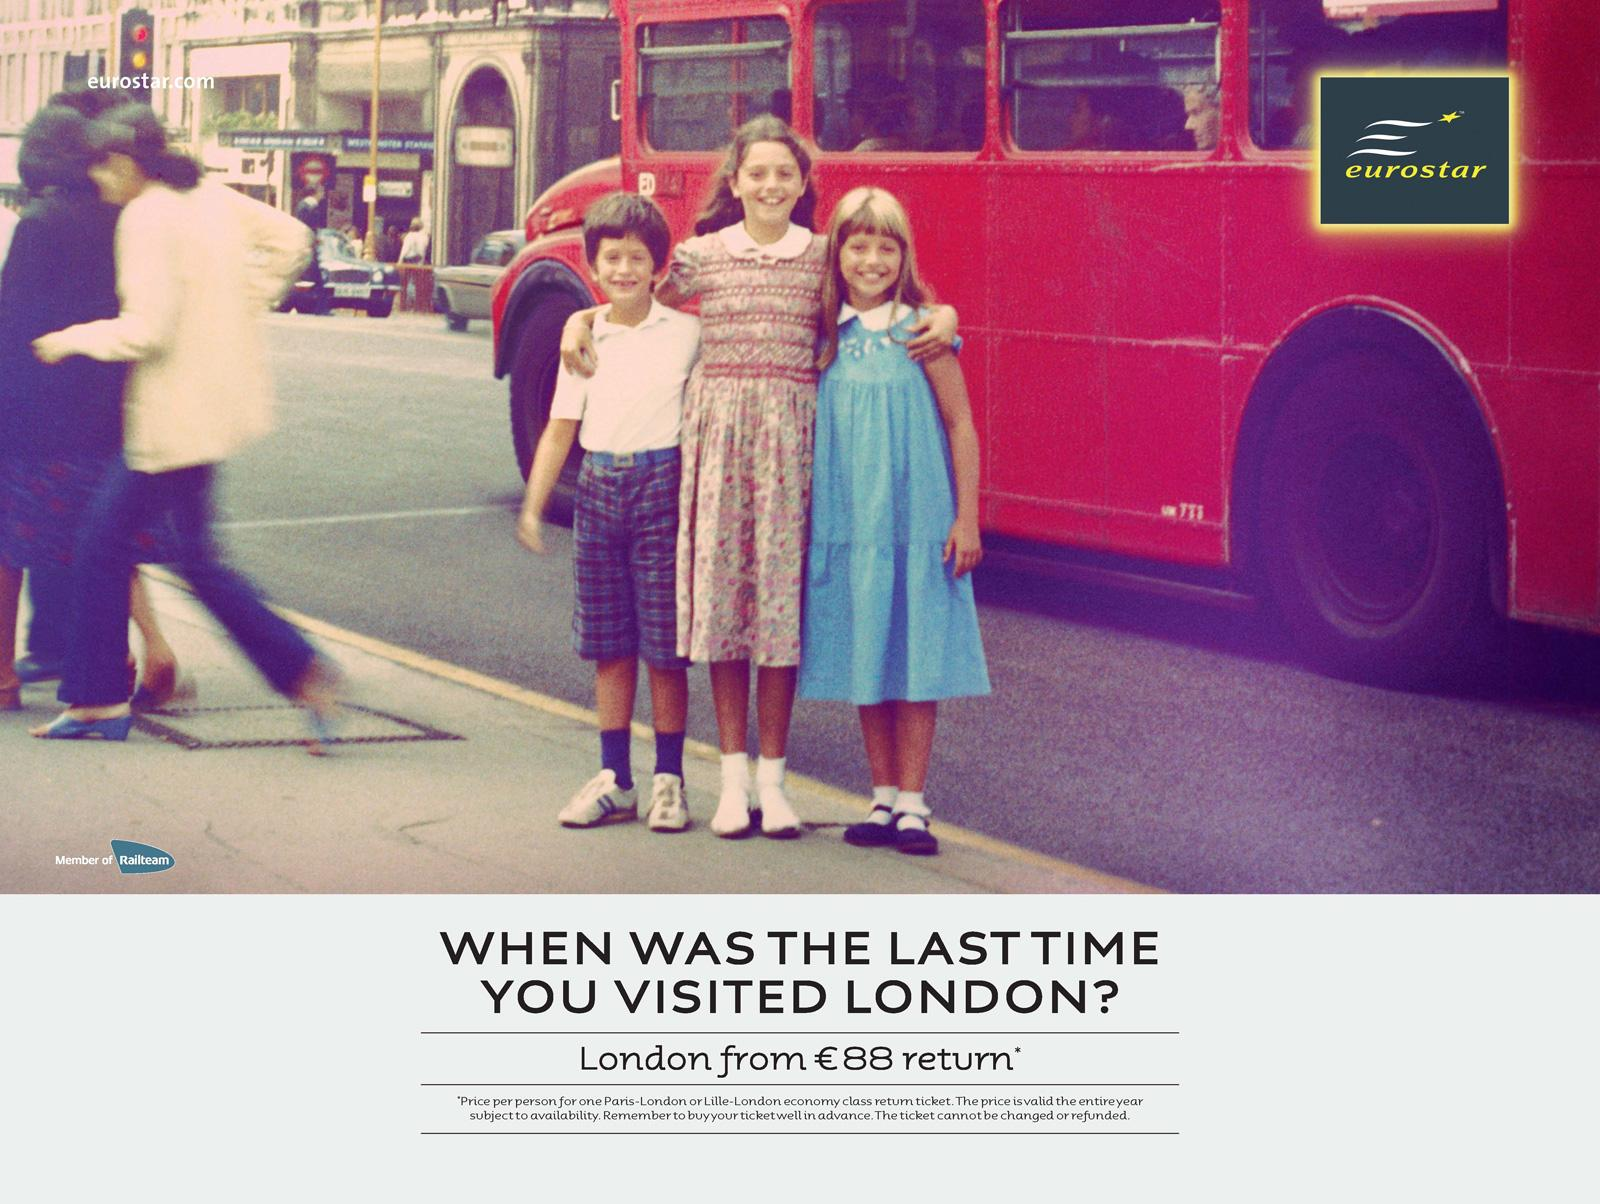 Eurostar Print Ad -  When Was the Last Time...?, 2